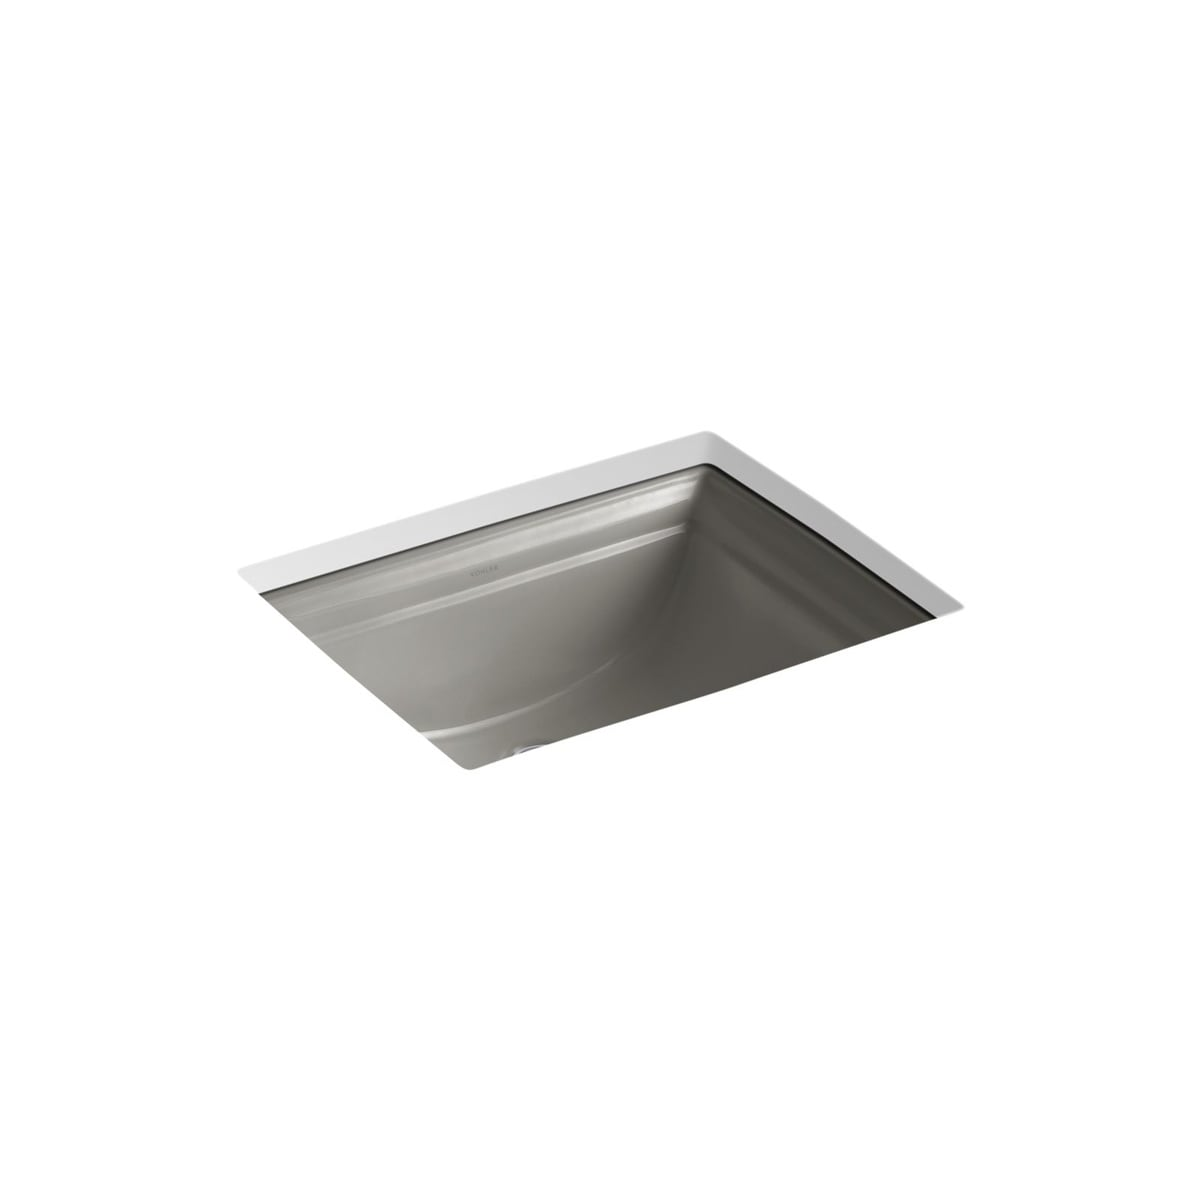 Kohler K 2339 Memoirs Undermount Bathroom Sink Free Shipping Today 22403504